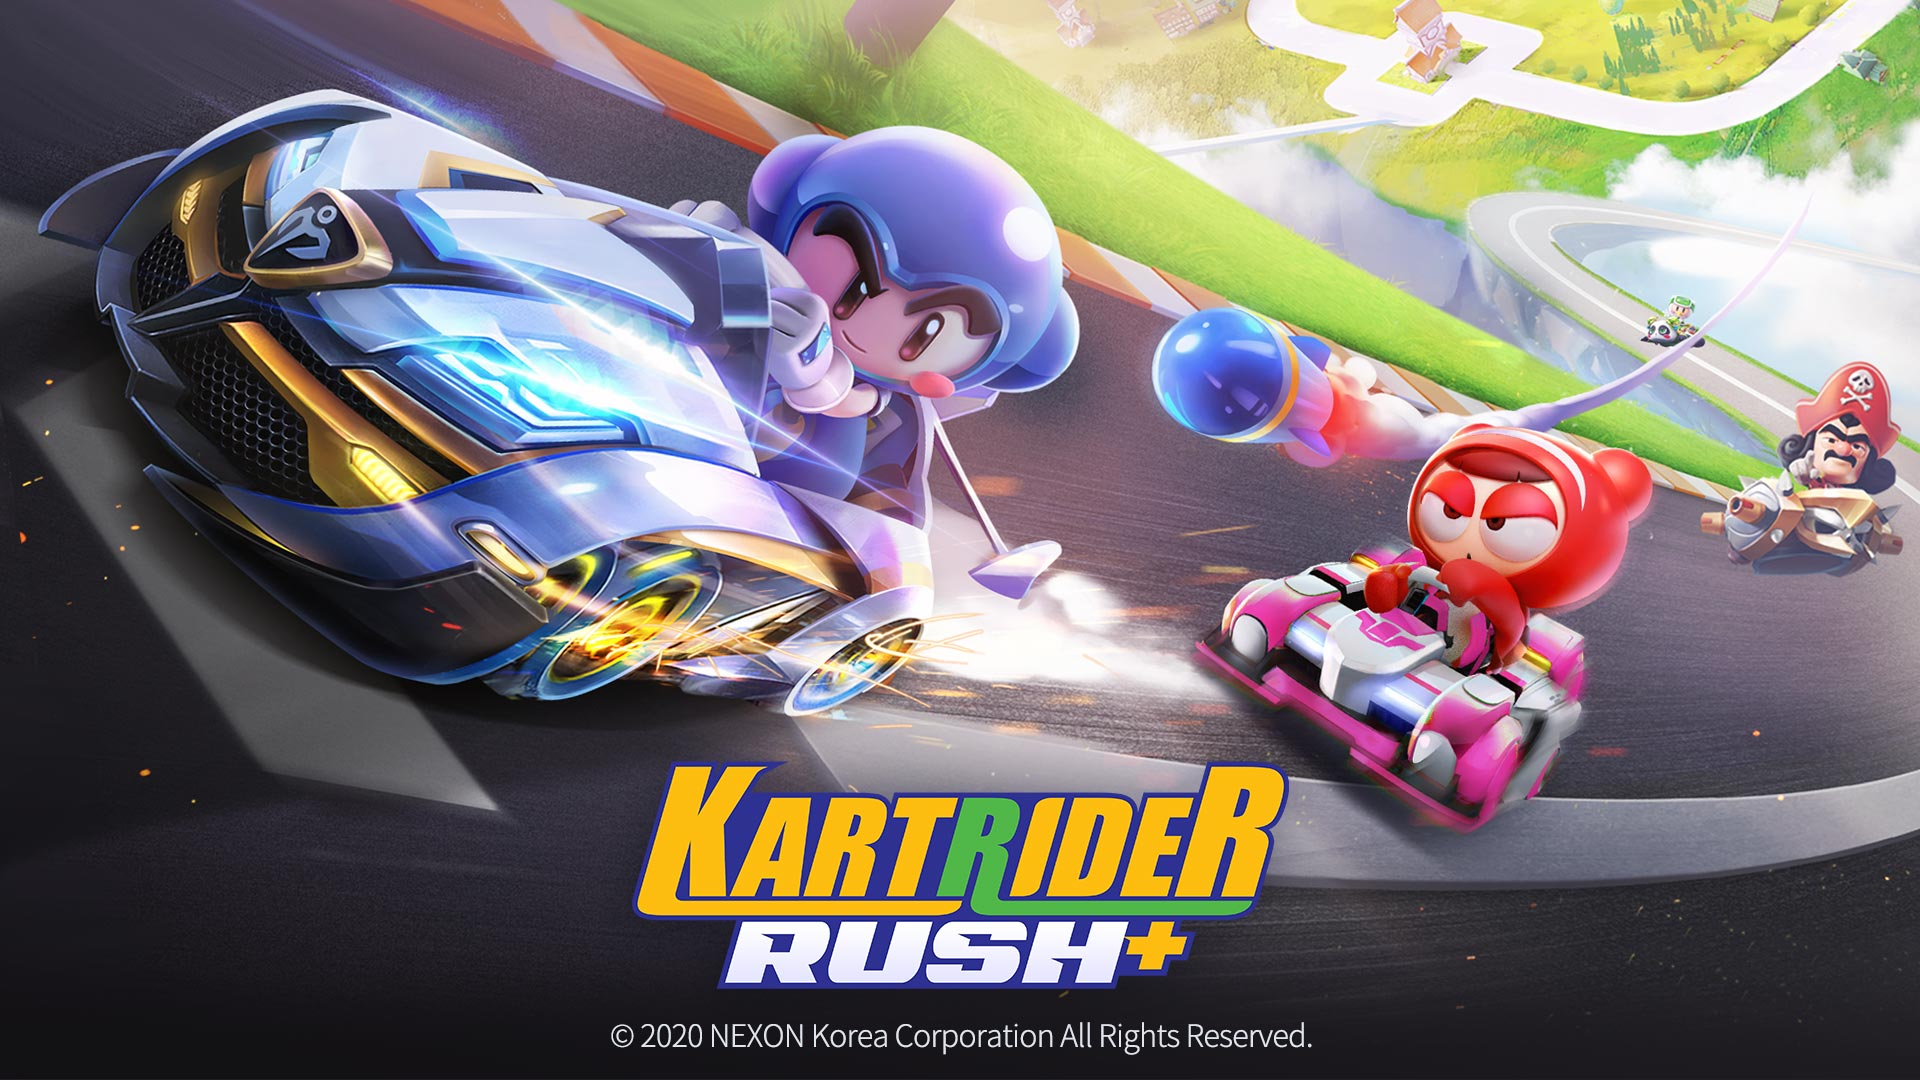 KartRider Rush+ Out Now On Mobile Devices